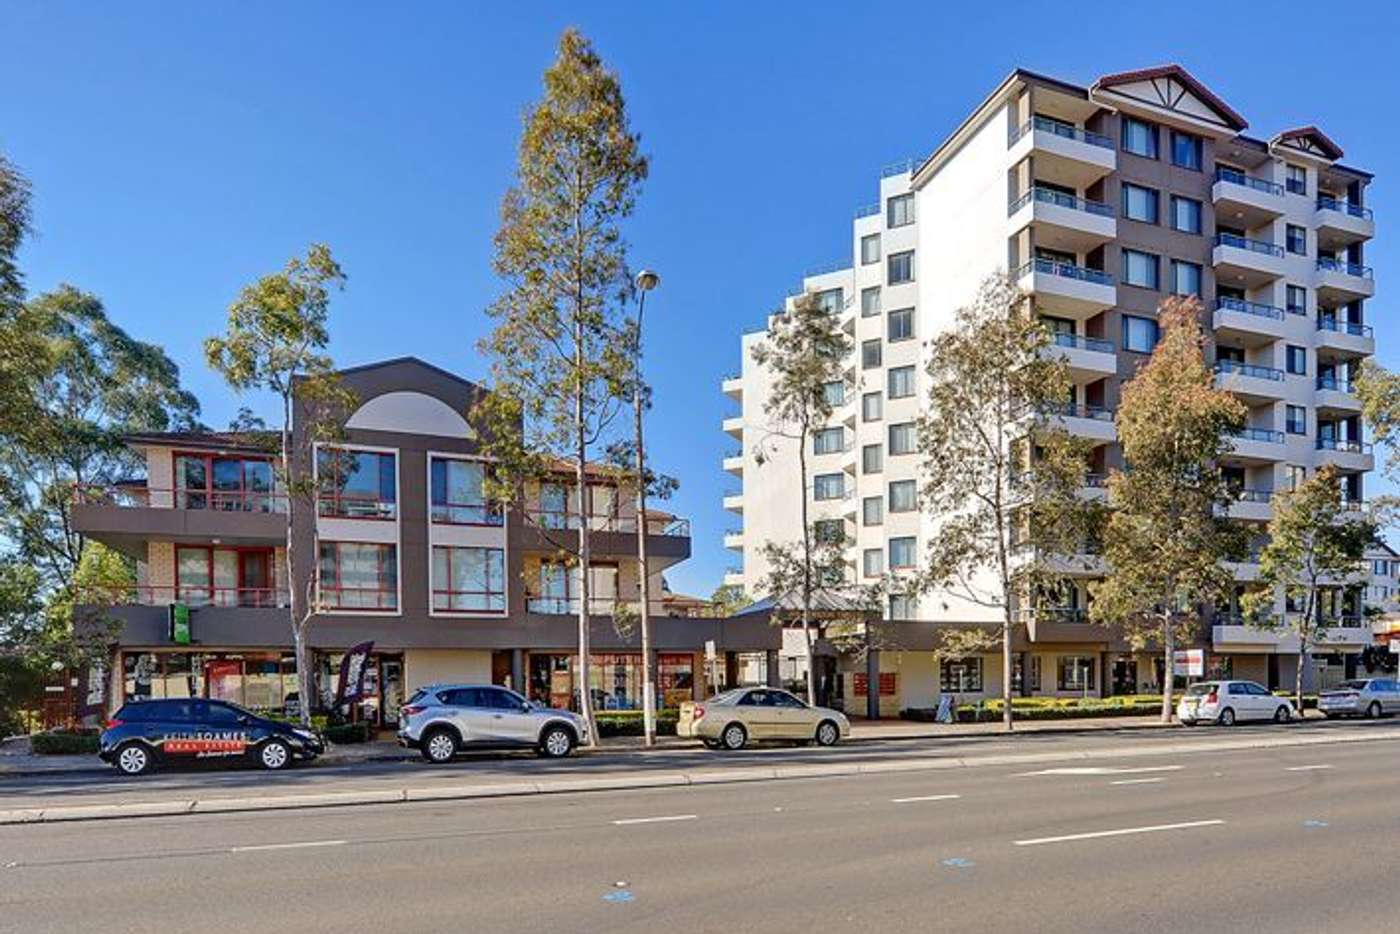 Main view of Homely apartment listing, 118/208-226 Pacific Highway, Hornsby NSW 2077